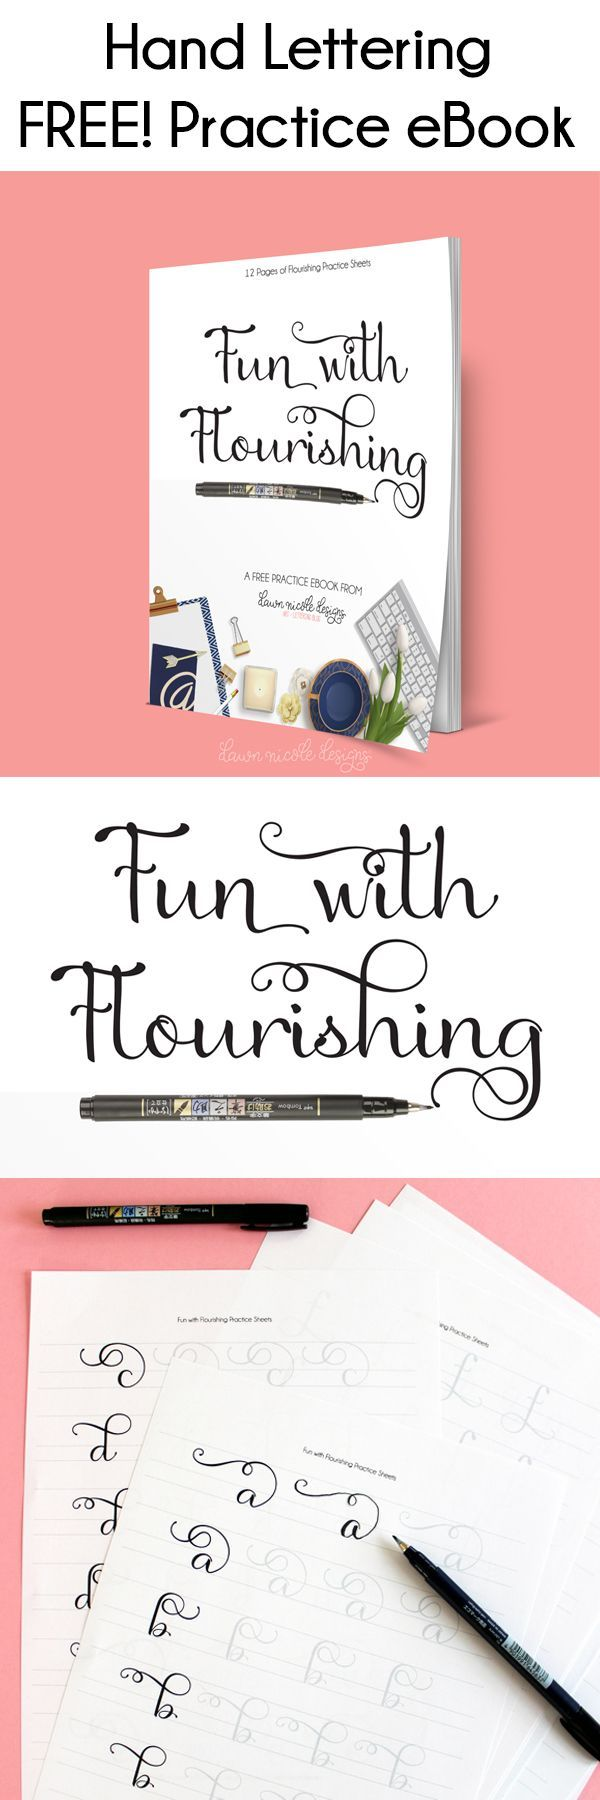 Fun with Flourishing: Free Hand Lettering Practice eBook. Work on your flourishes with the twelve pages of practice sheets in this FREE EBOOK! http://dawnnicoledesigns.com